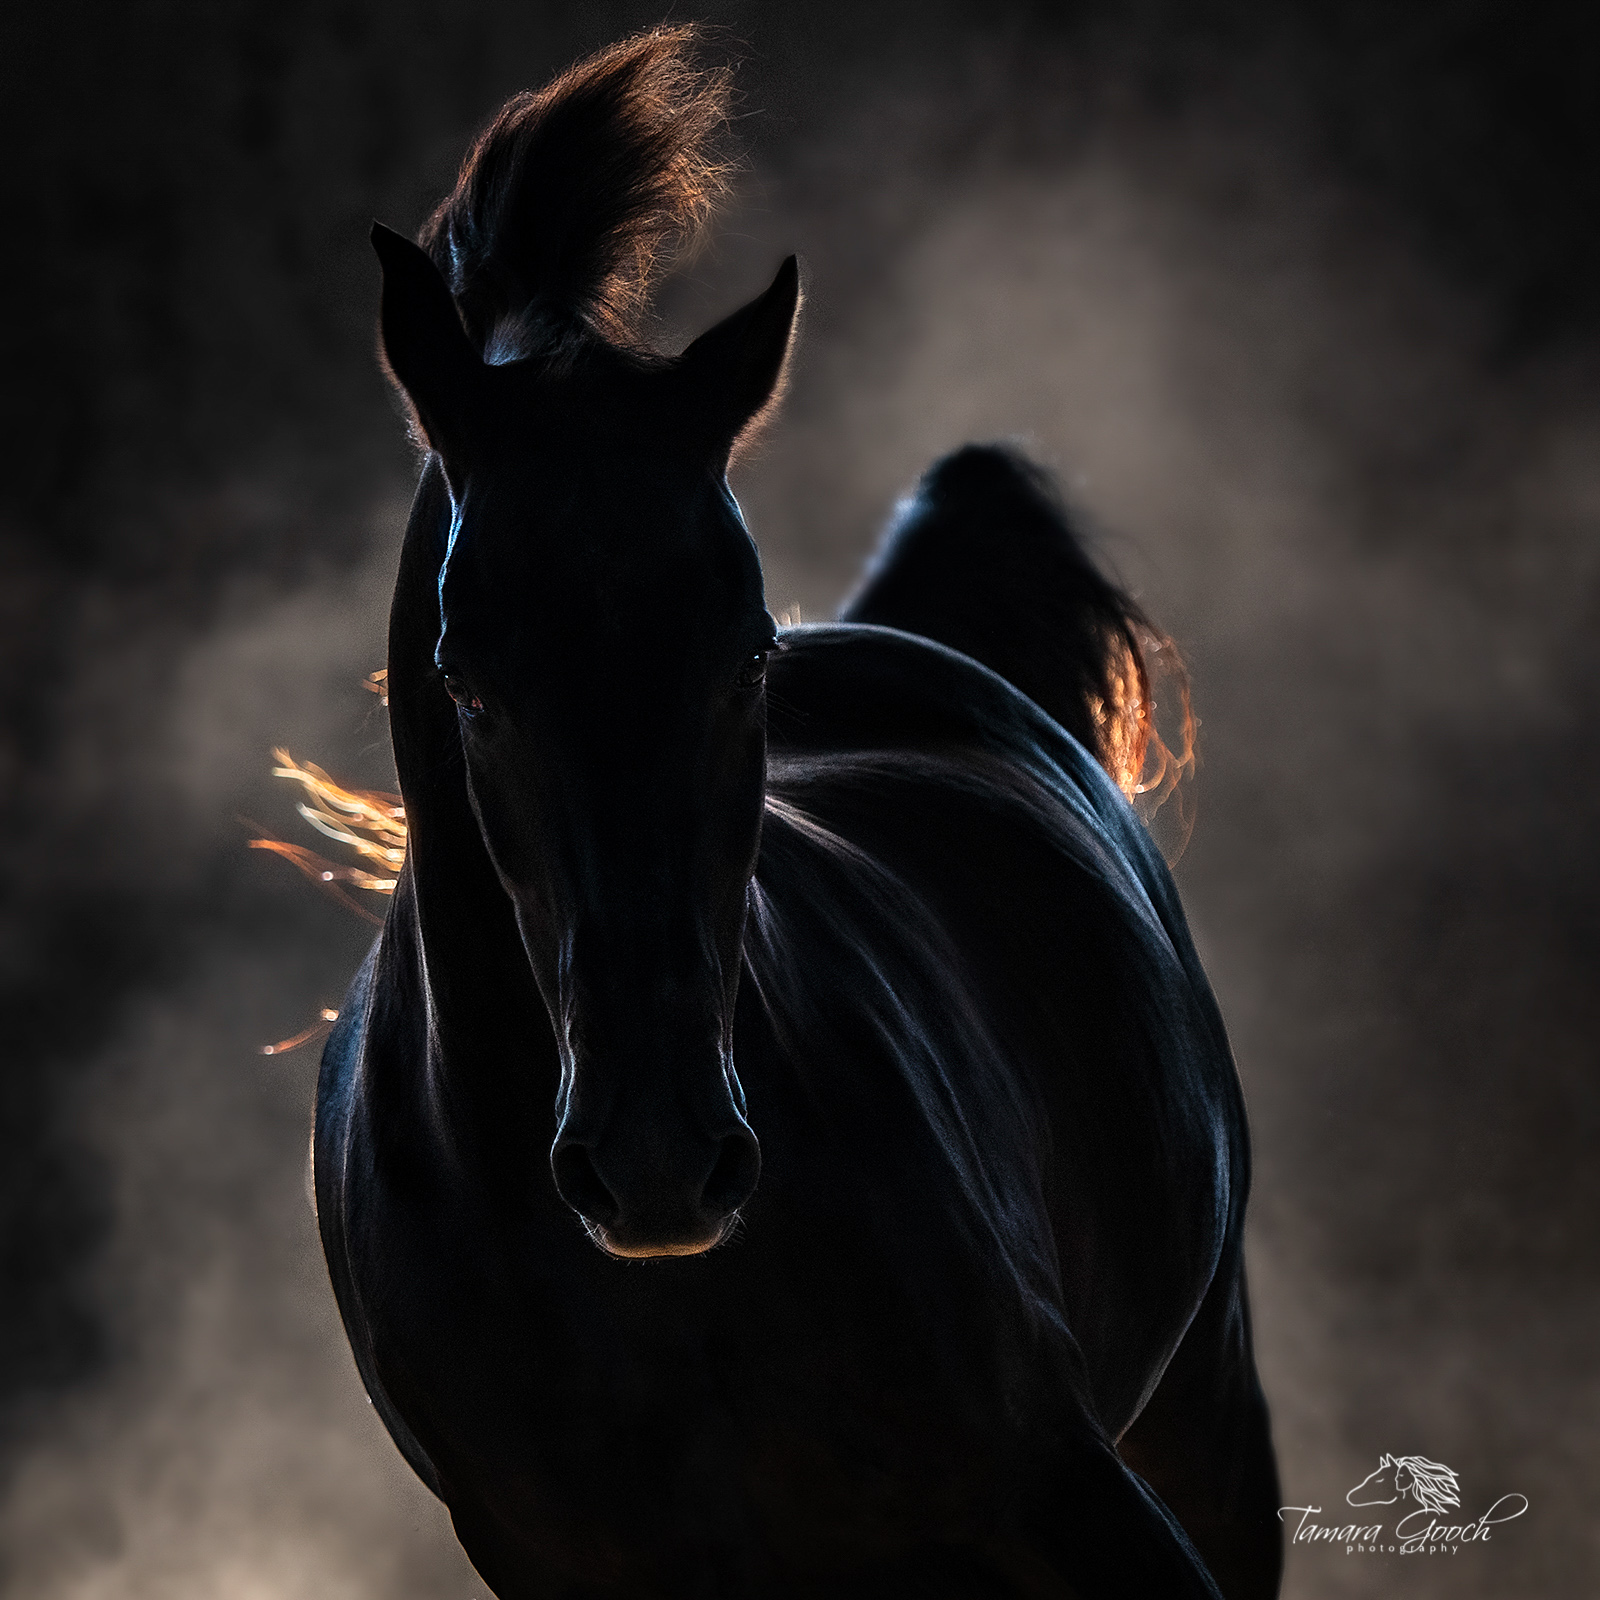 A photo of a morgan horse at liberty back lit with dust in the background.